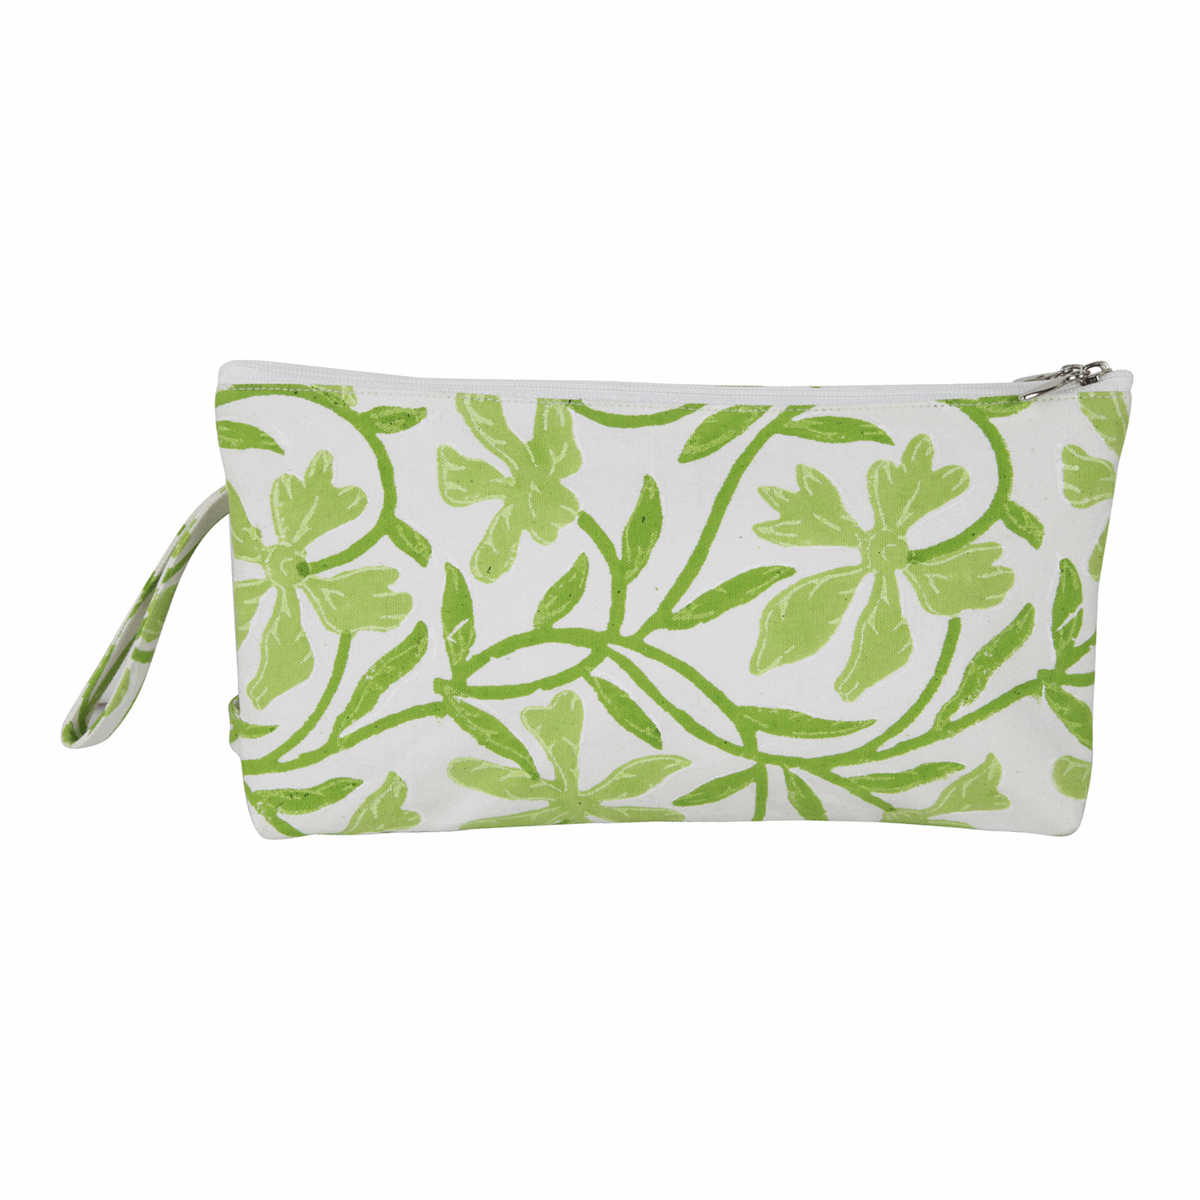 Picture of Grace: Triangular Zipped Pouch: Large 2